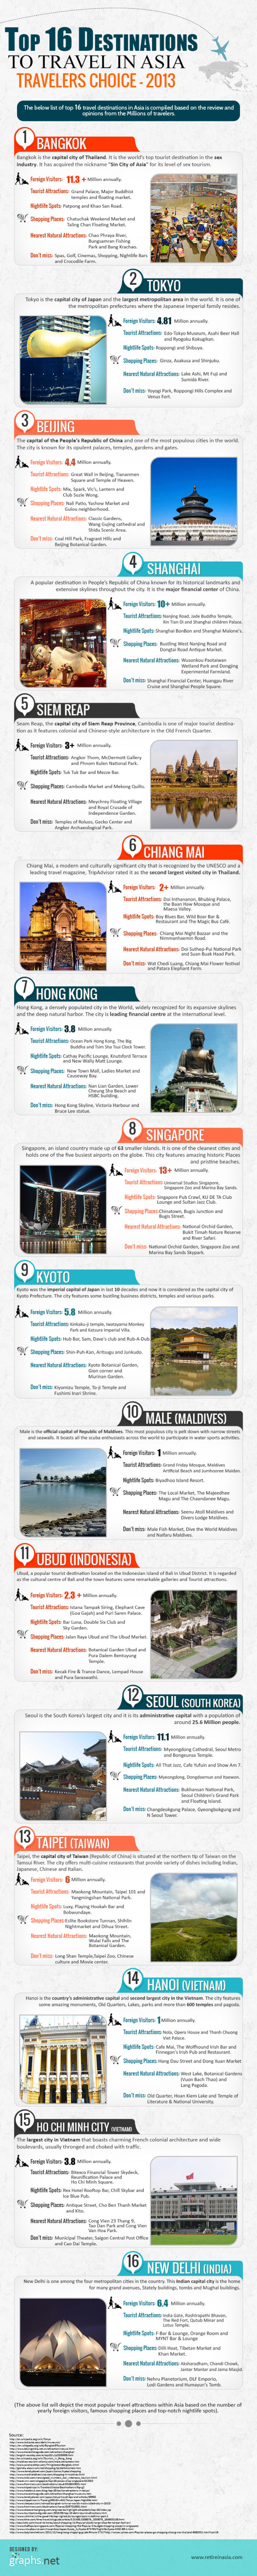 Top 16 Destinations to Travel in Asia (Infographic)